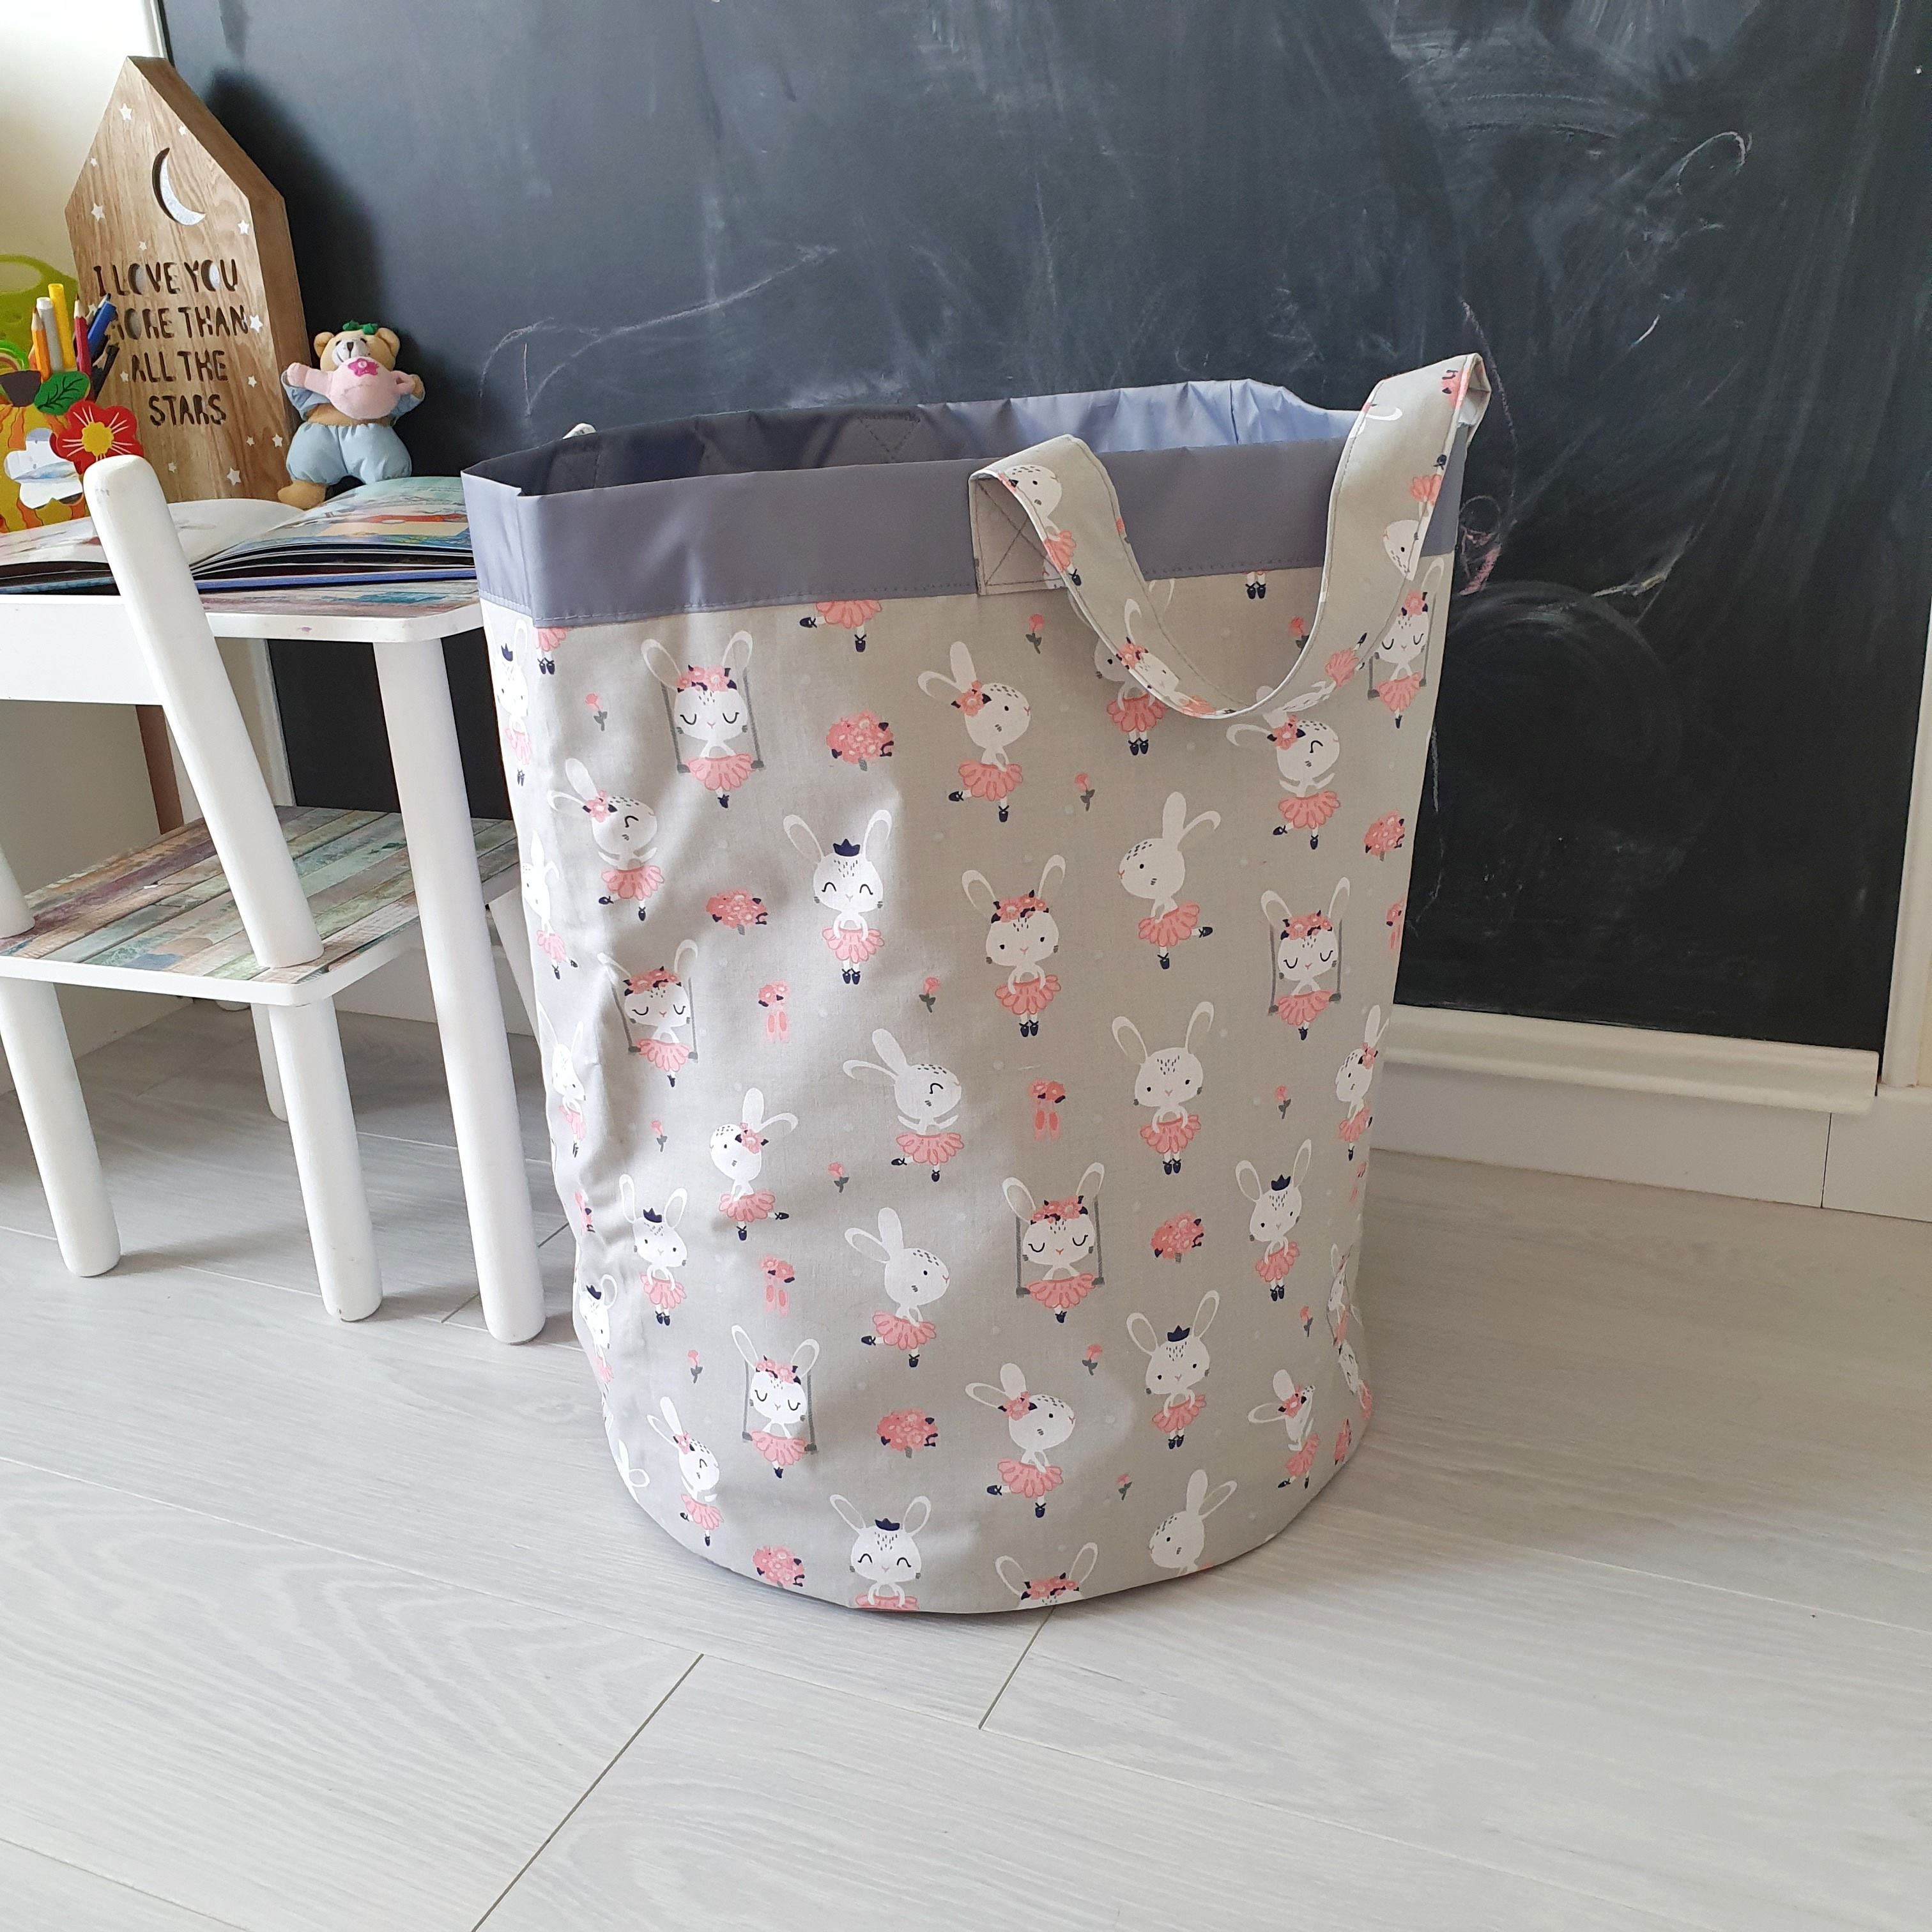 Fabric Basket Toy Box Basket For Toys Toy Storage Fabric Storage Basket Laundry Basket Storage Bin Laundry Bag Gift For Baby Rabbits Print Fabric Storage Baskets Storage Baskets Toy Storage Bags